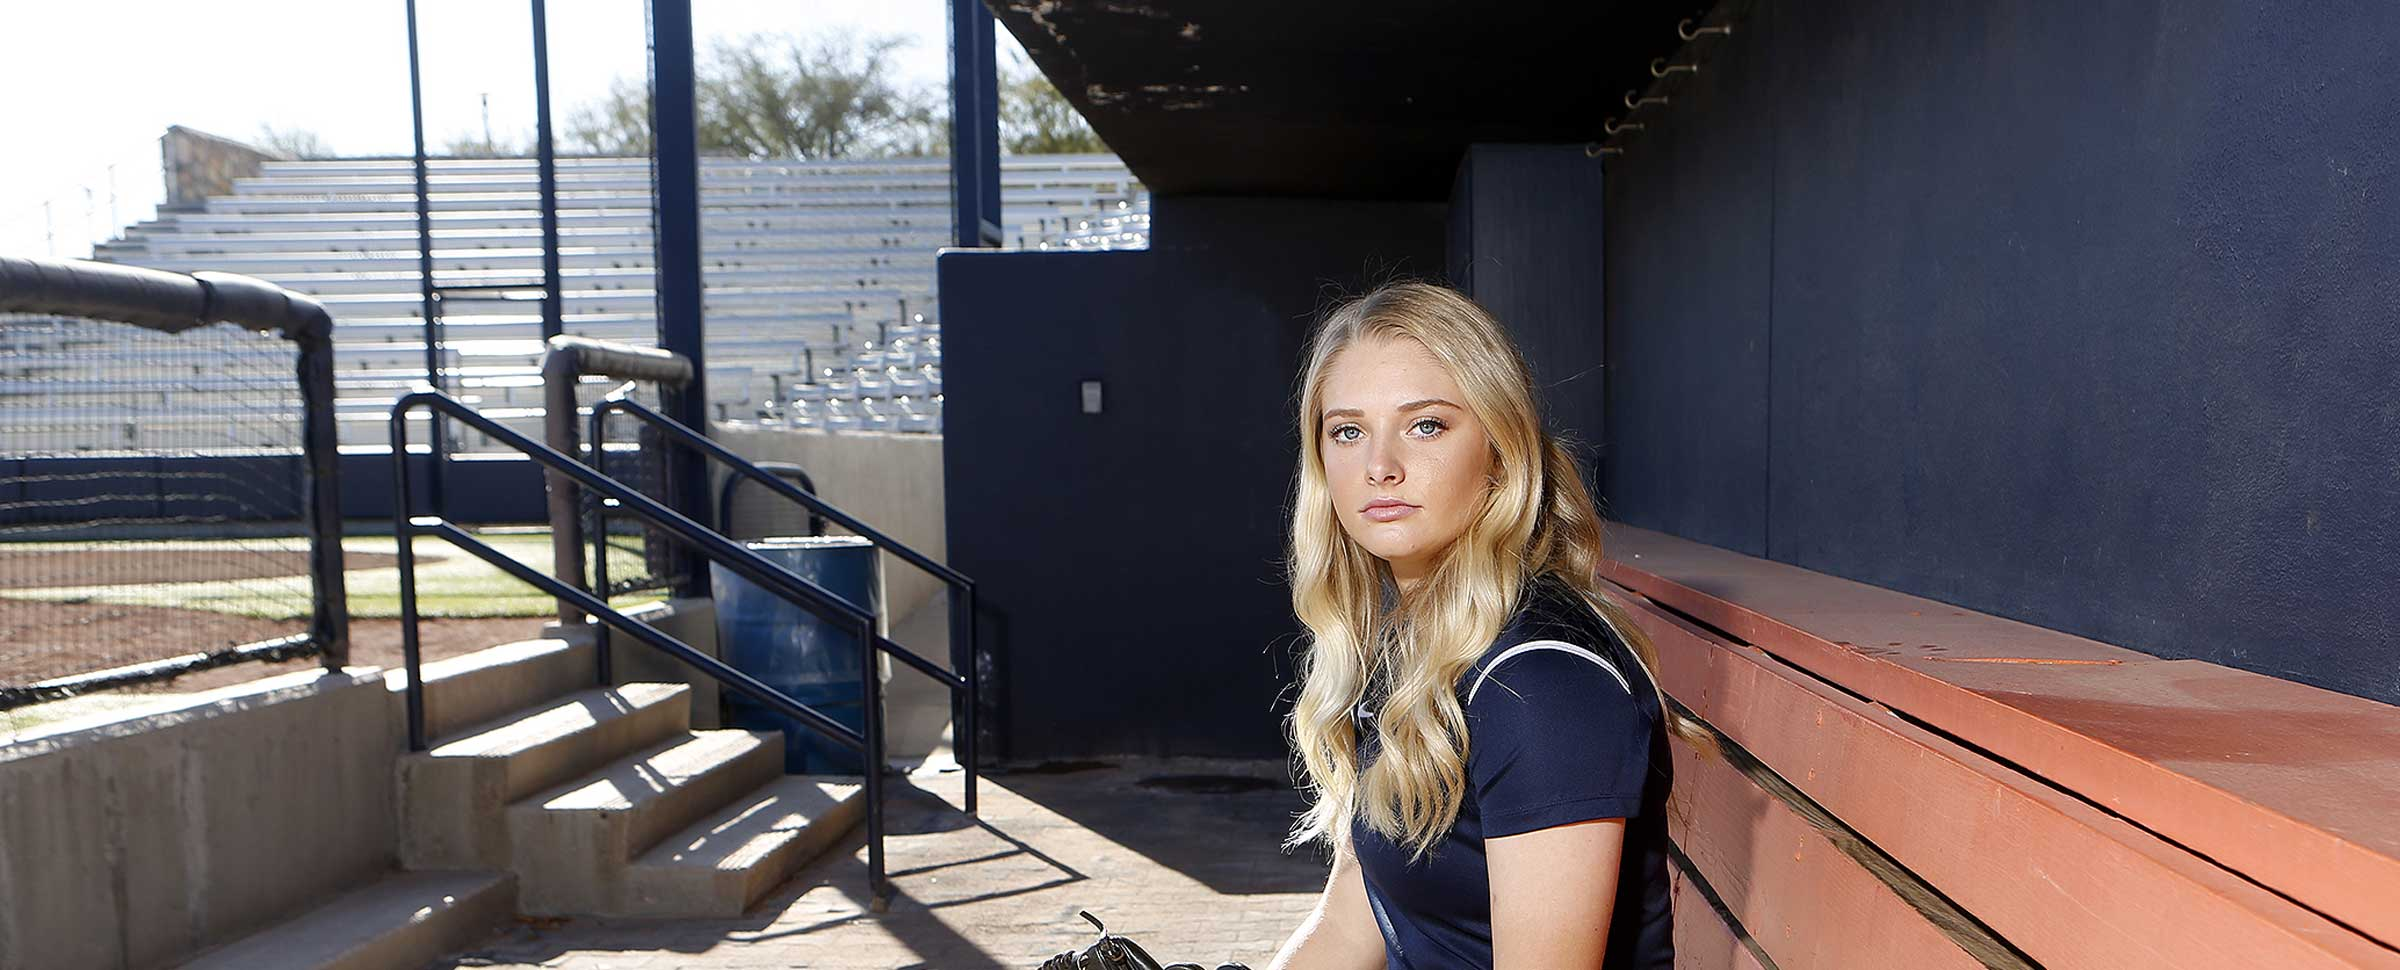 Miner Lives Lifelong Dream of Playing Softball